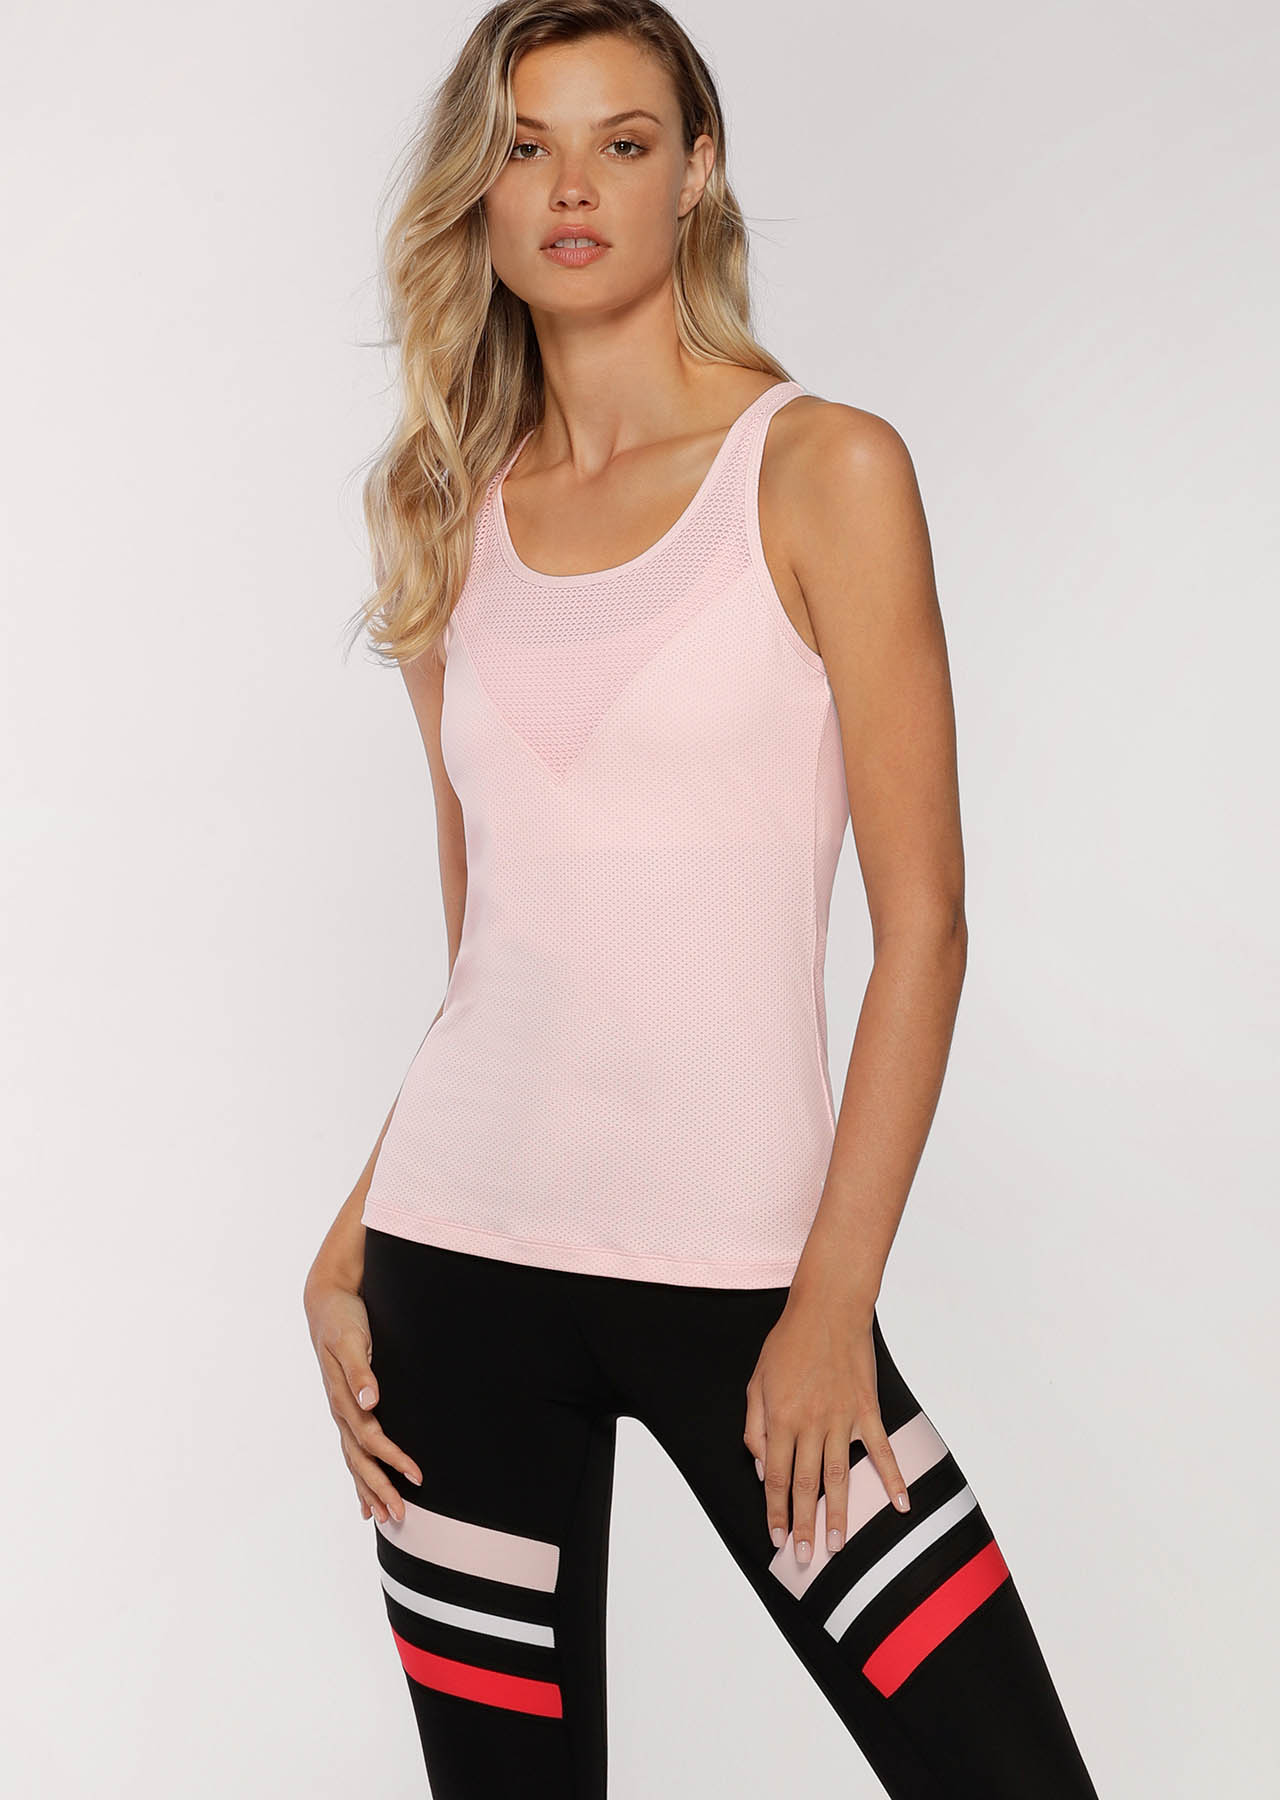 sweat it out excel tank pink 052028 ppeo 1 - Sports & Fitness